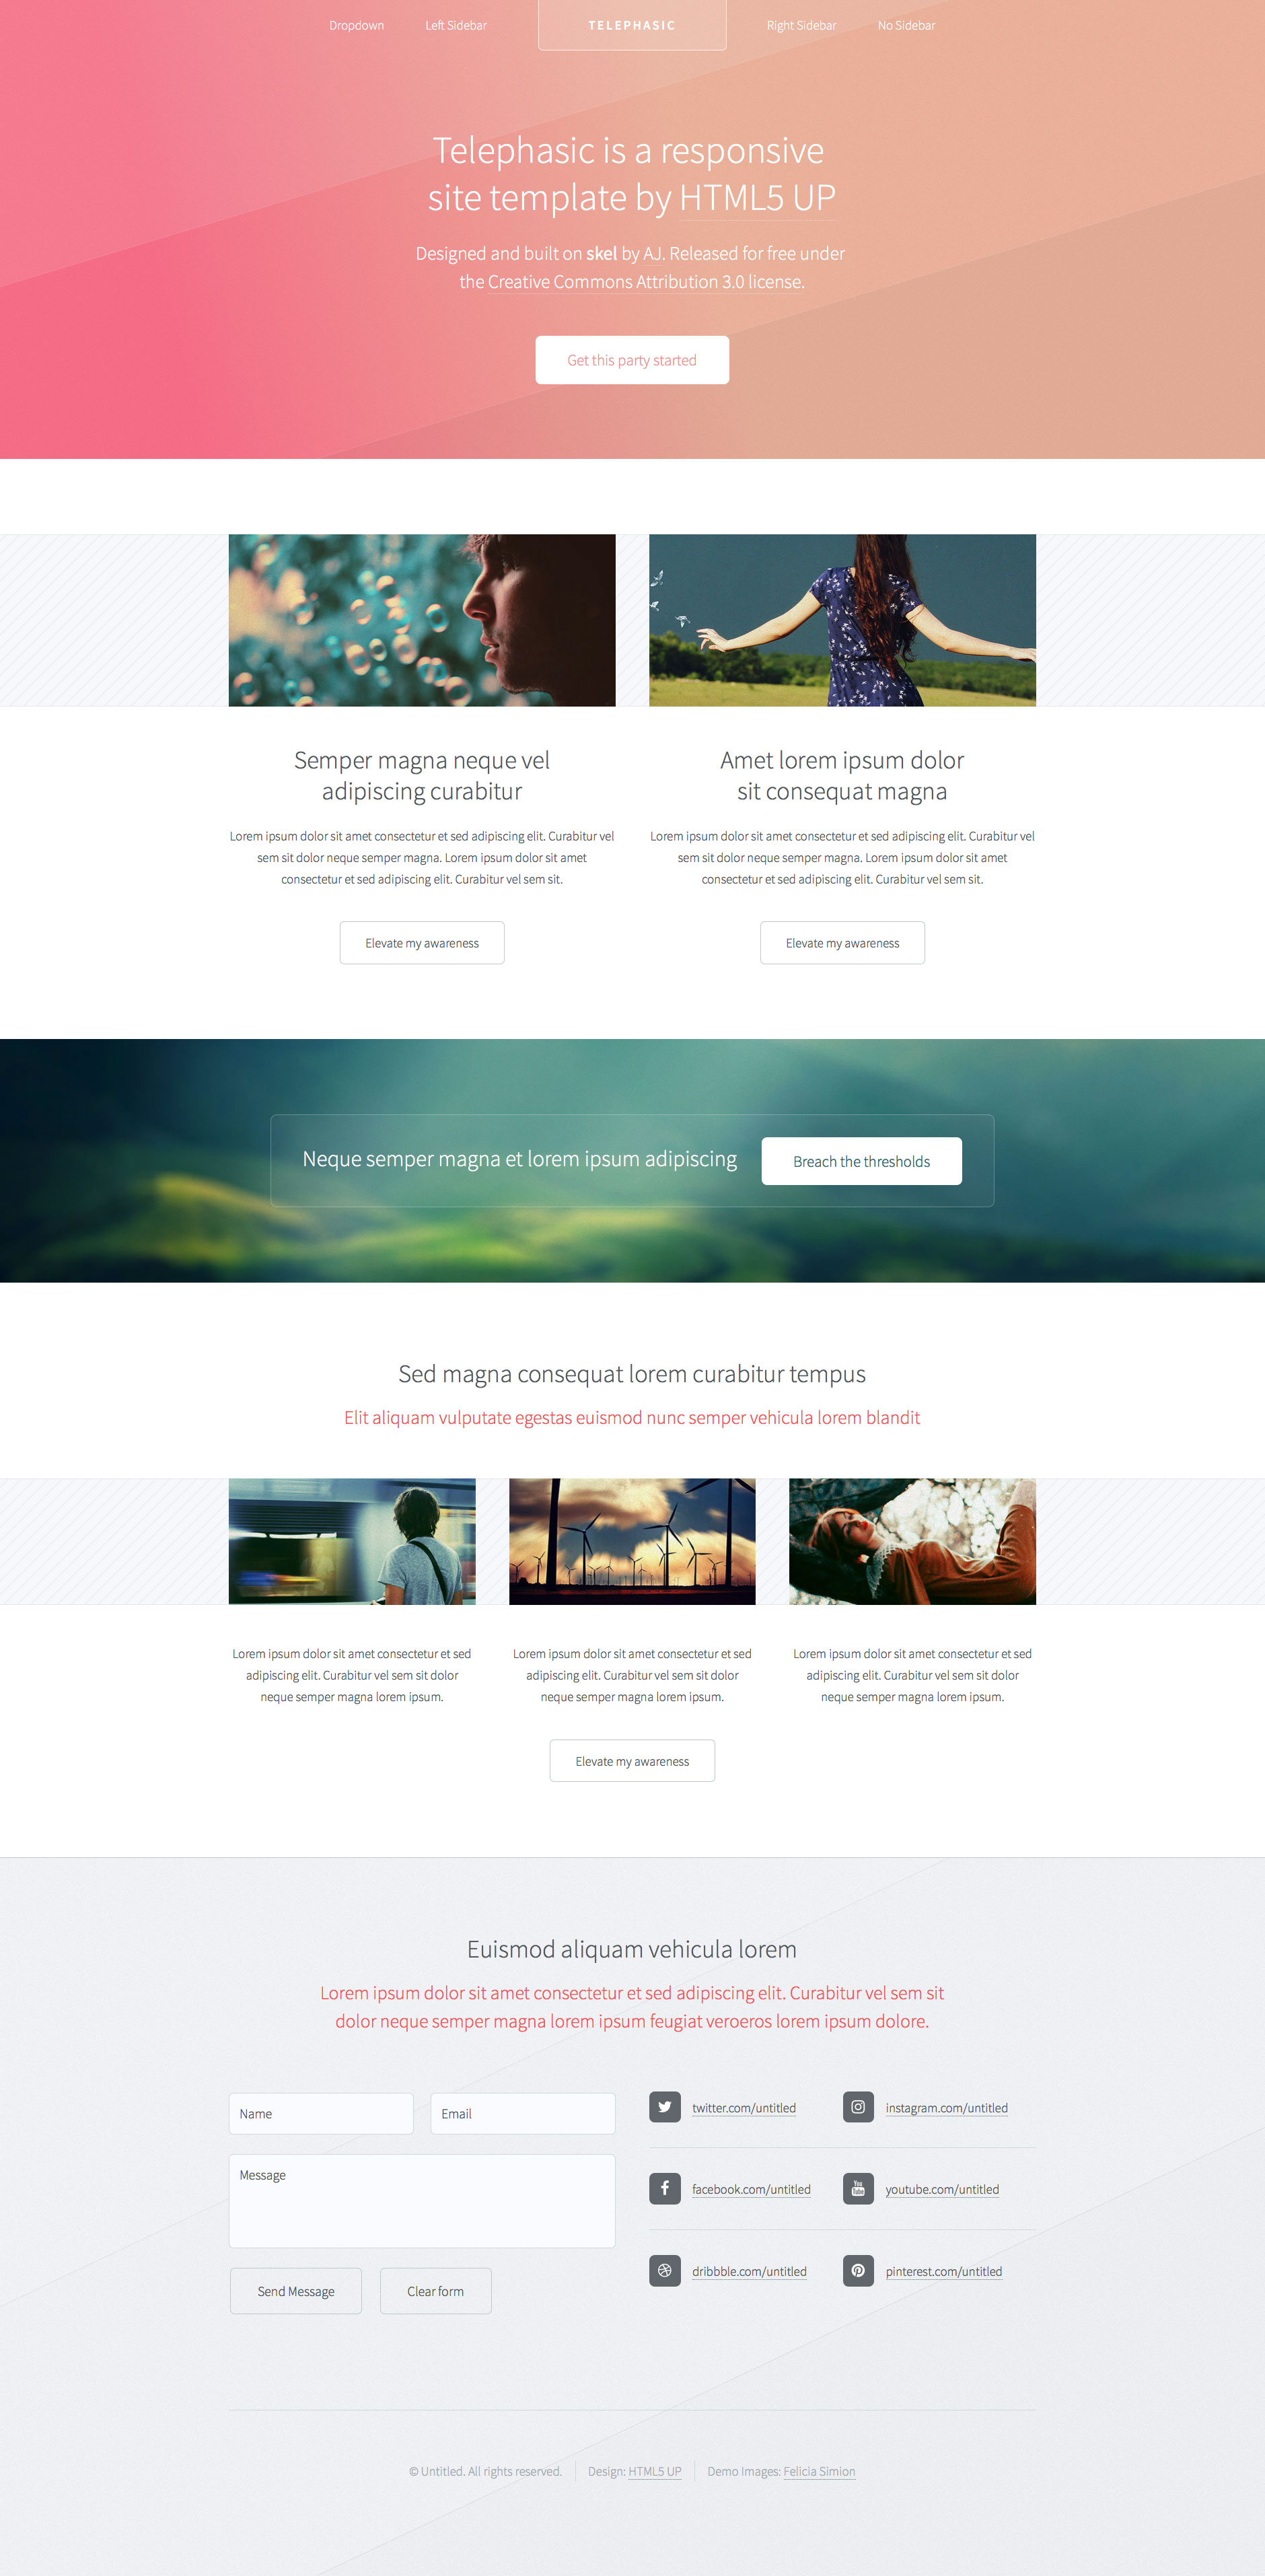 Telephasic is retina ready free responsive HTML5 website template. It features a sharp and modern design. The prefect choice for personal websites. This template uses the latest HTML5 and CSS3 technologies.